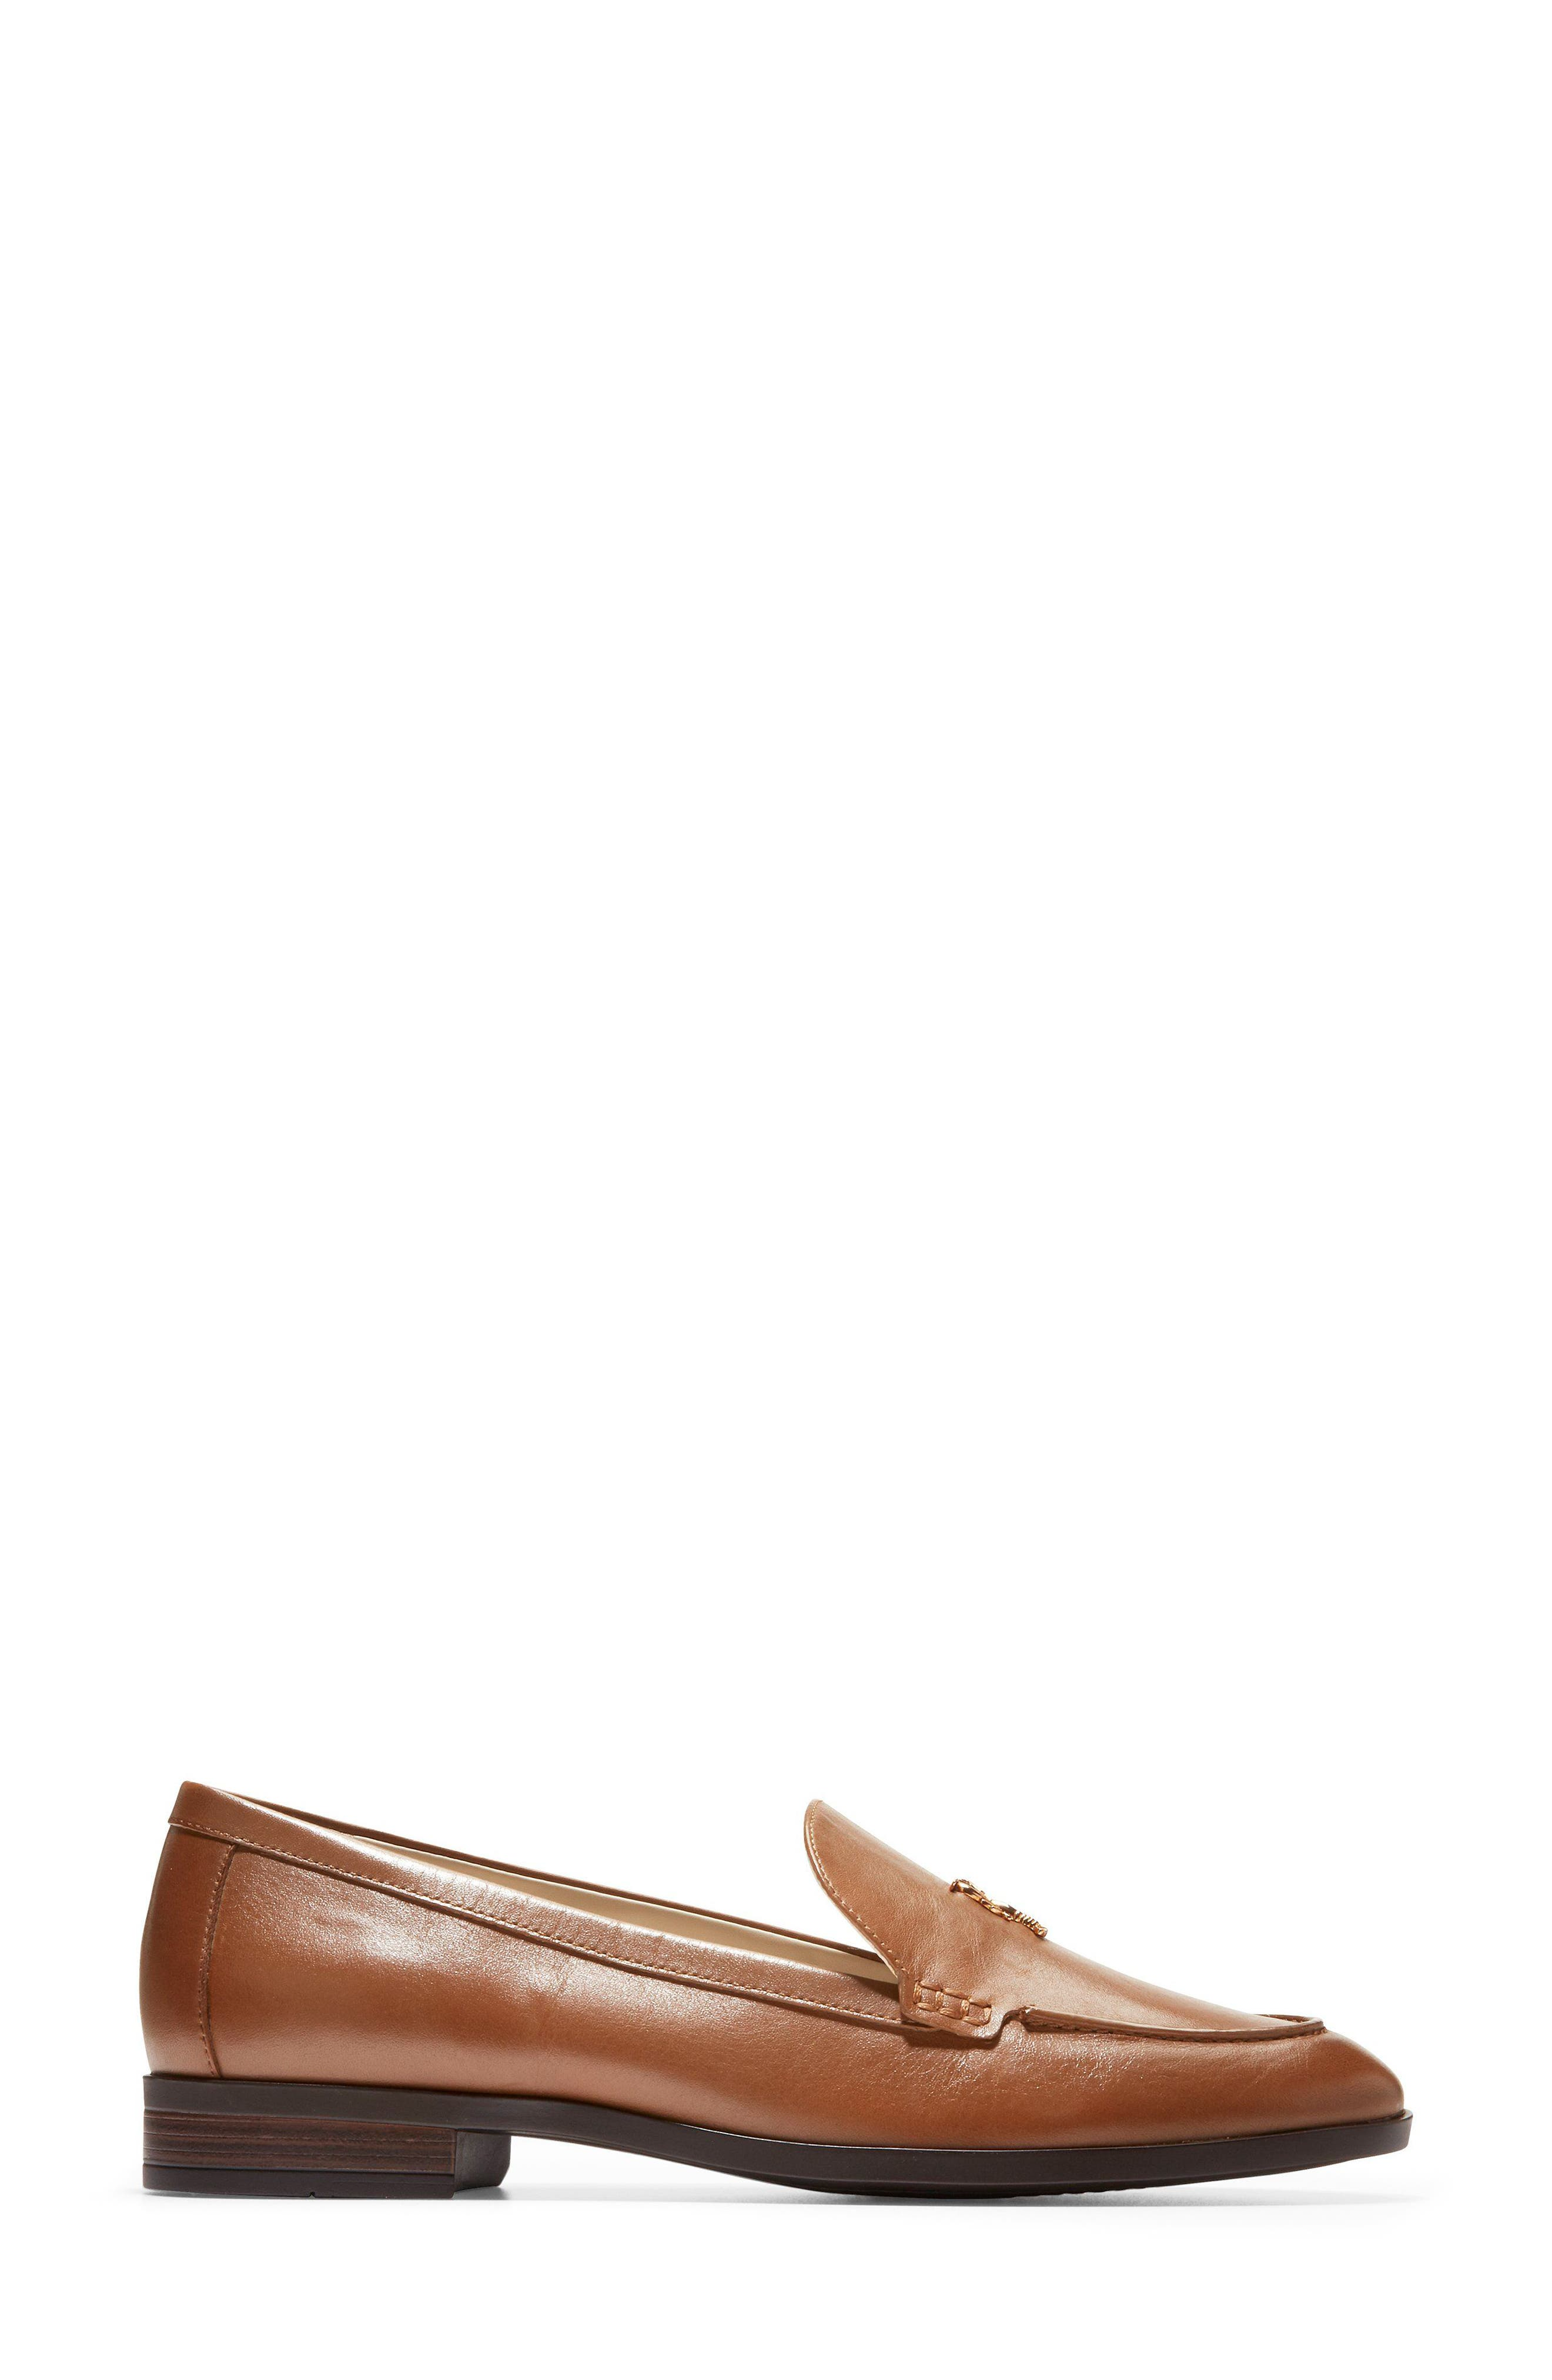 Pinch Lobster Loafer,                             Alternate thumbnail 13, color,